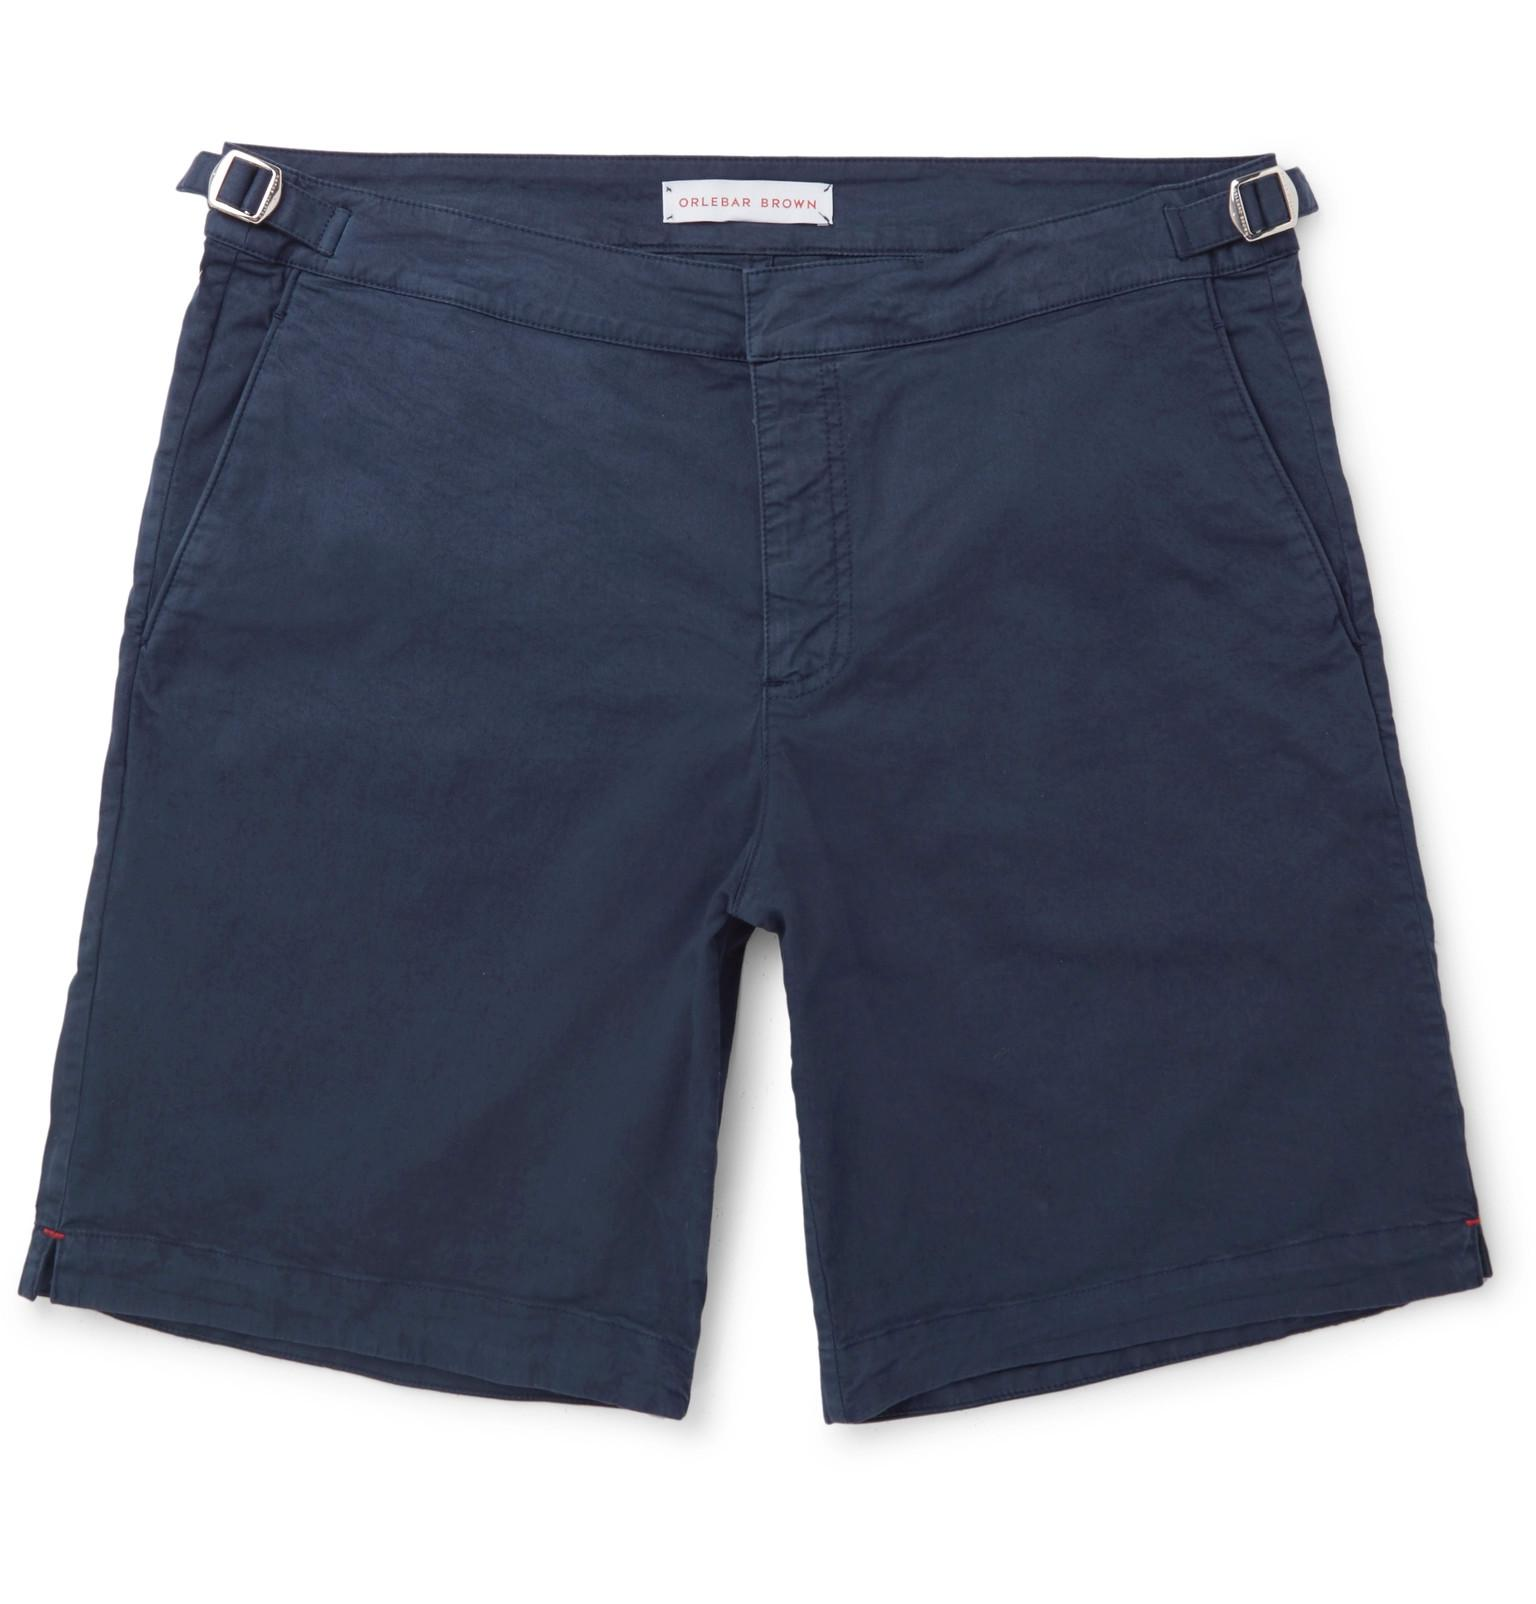 Dane Stretch Cotton-blend Twill Shorts Orlebar Brown Geniue Stockist Cheap Price Fast Delivery For Sale cqBstjIB